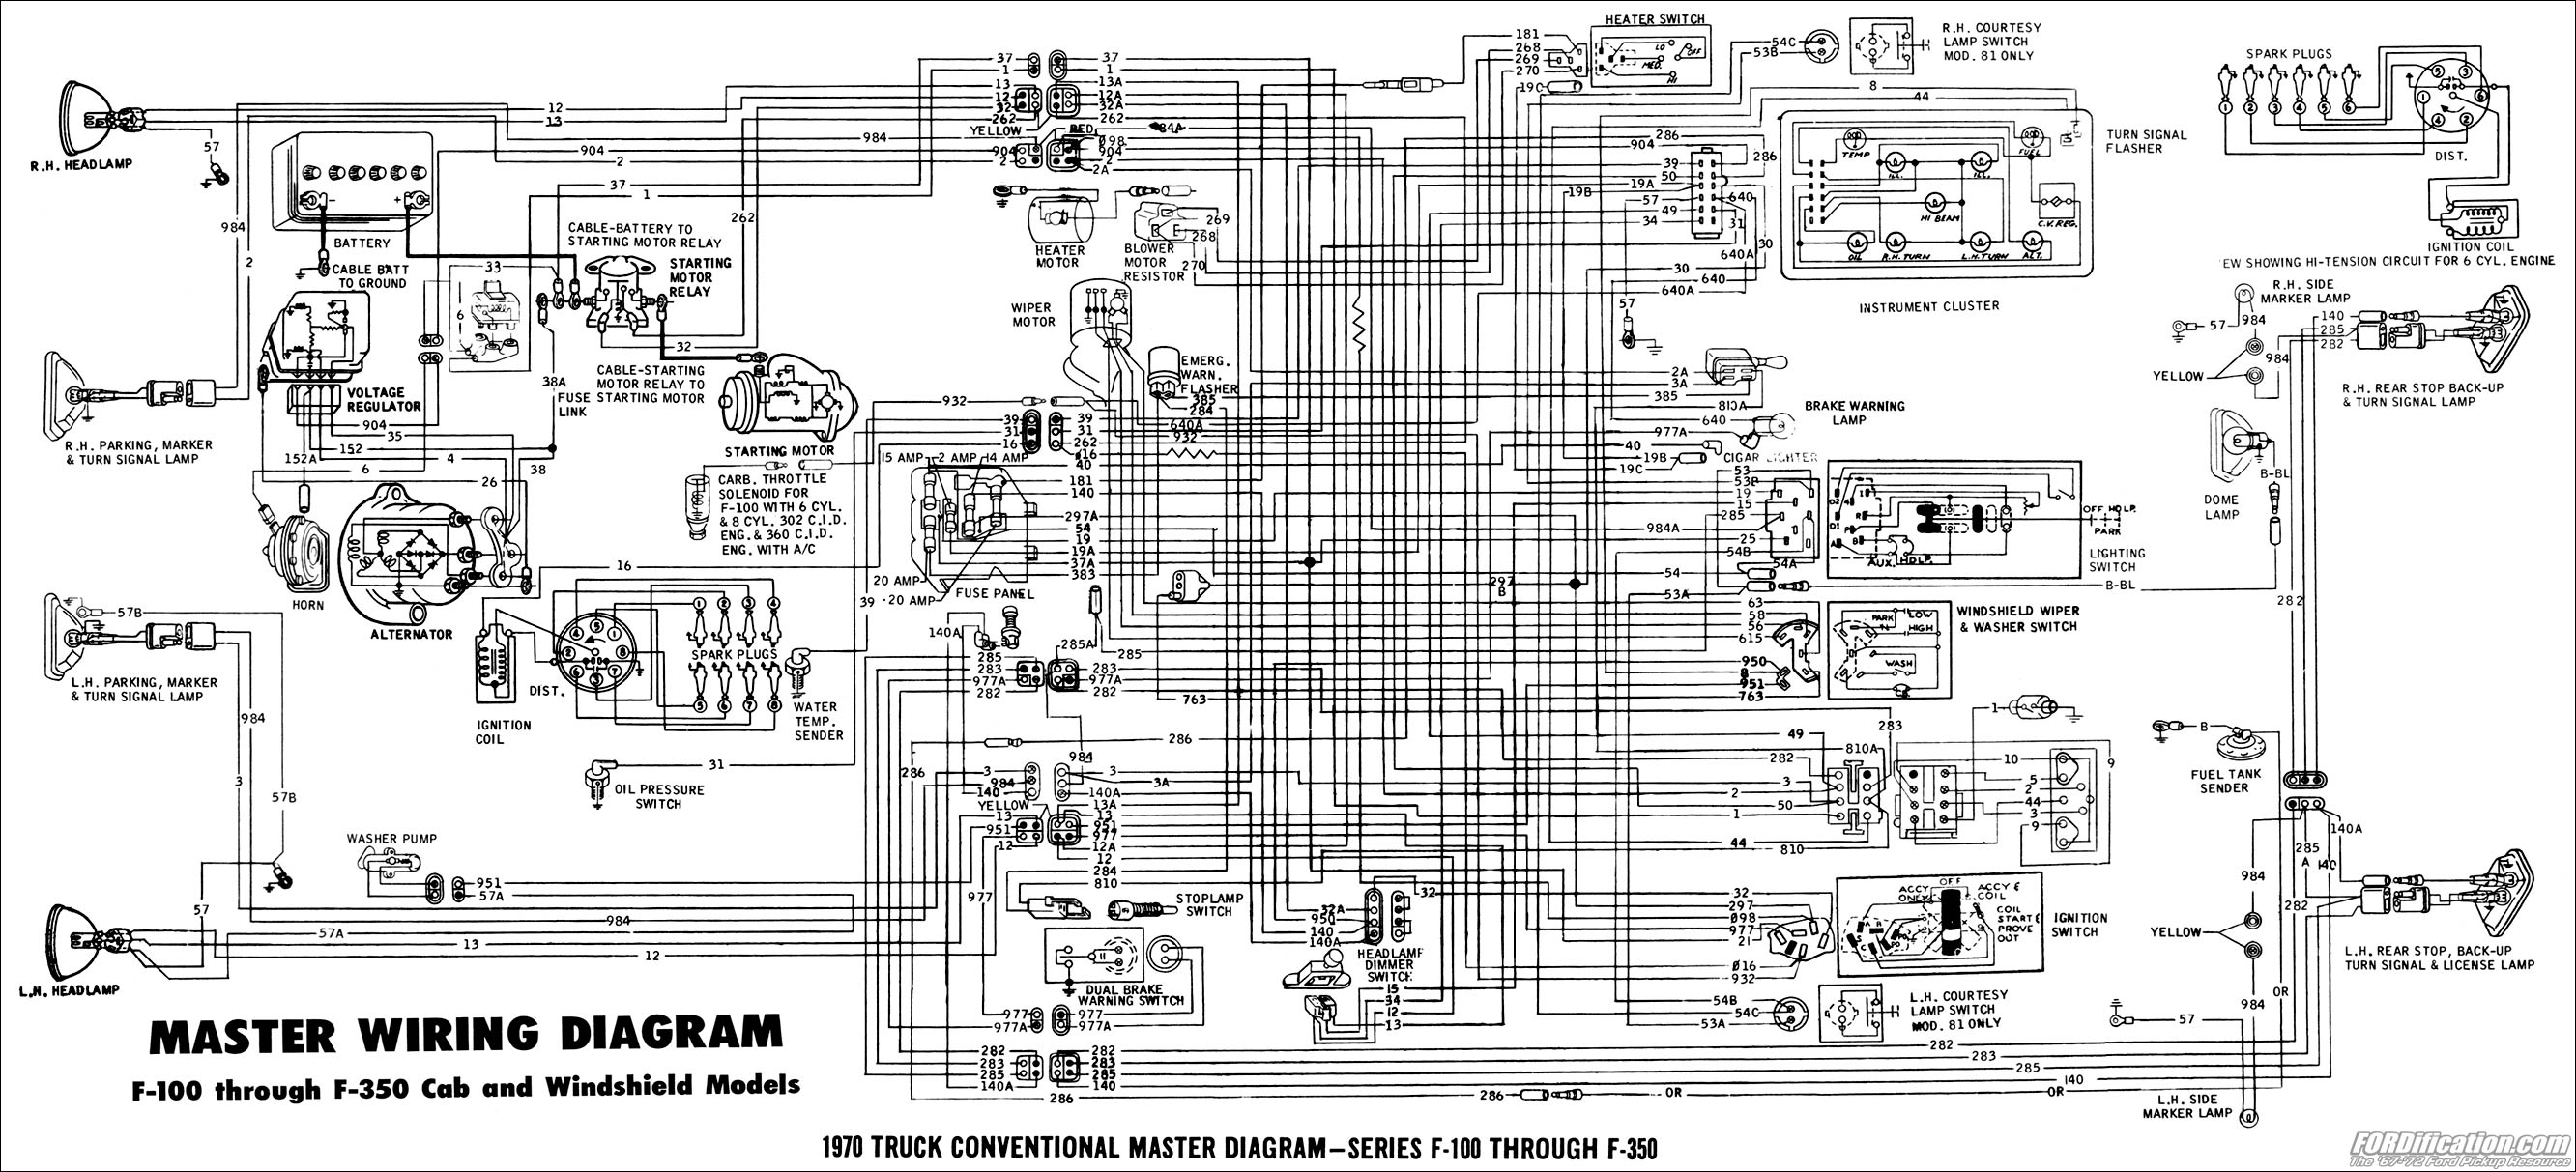 2005 ford expedition injector wiring diagram smart wiring diagrams u2022 rh emgsolutions co